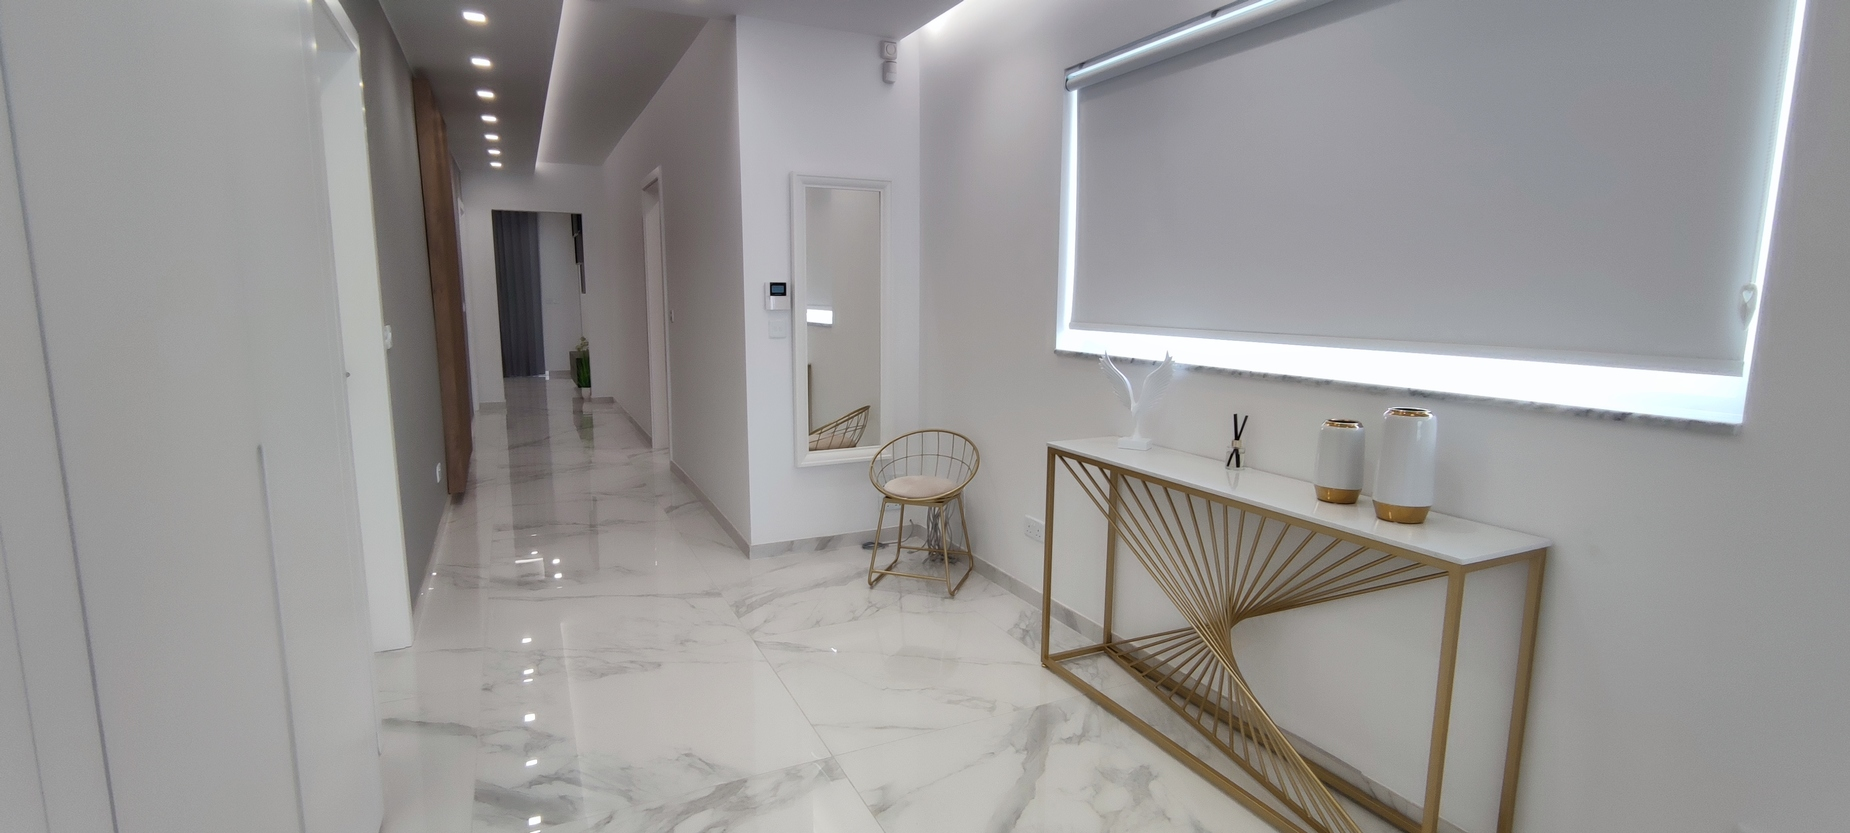 4 bed Penthouse For Rent in Sliema, Sliema - thumb 19